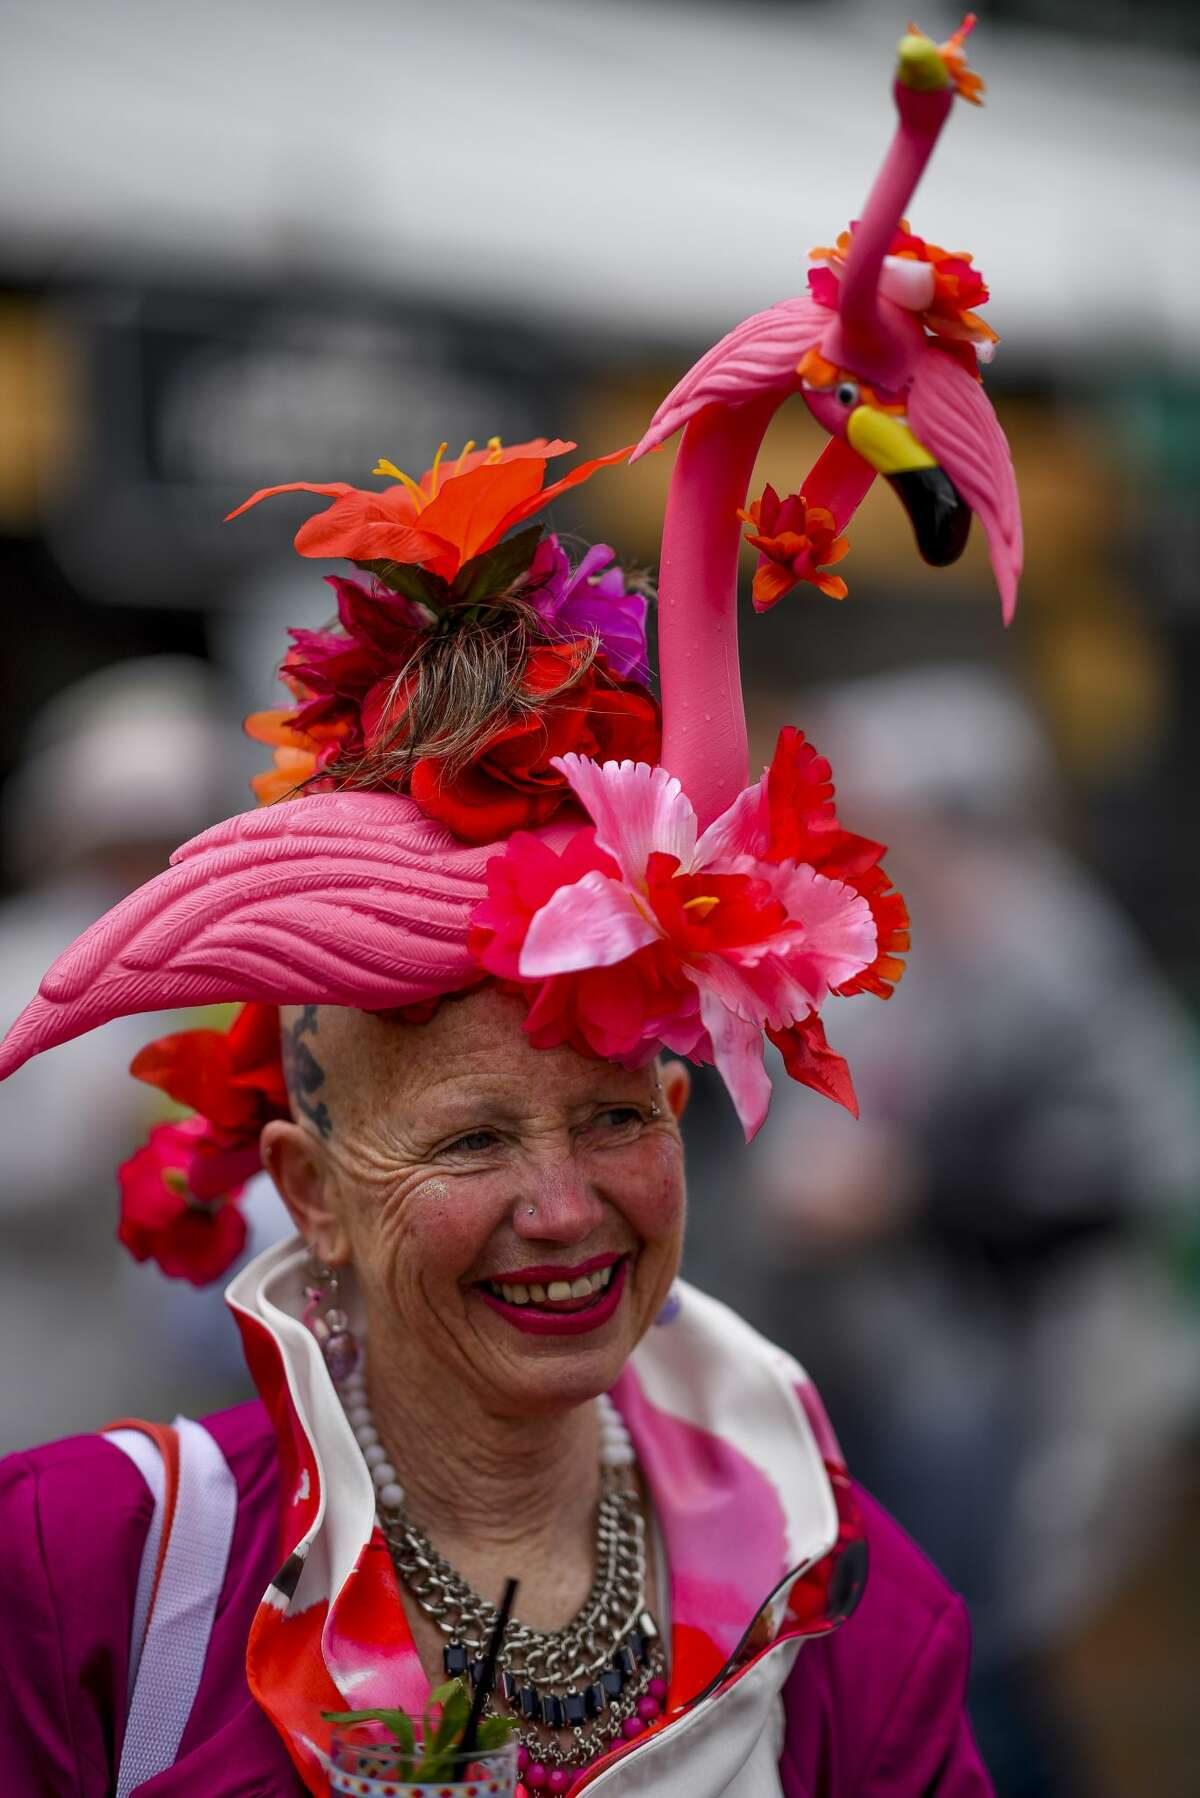 A woman wears a pink hat with a flamingo on it on Kentucky Derby Day at Churchill Downs on May 6, 2017 in Louisville, Kentucky.